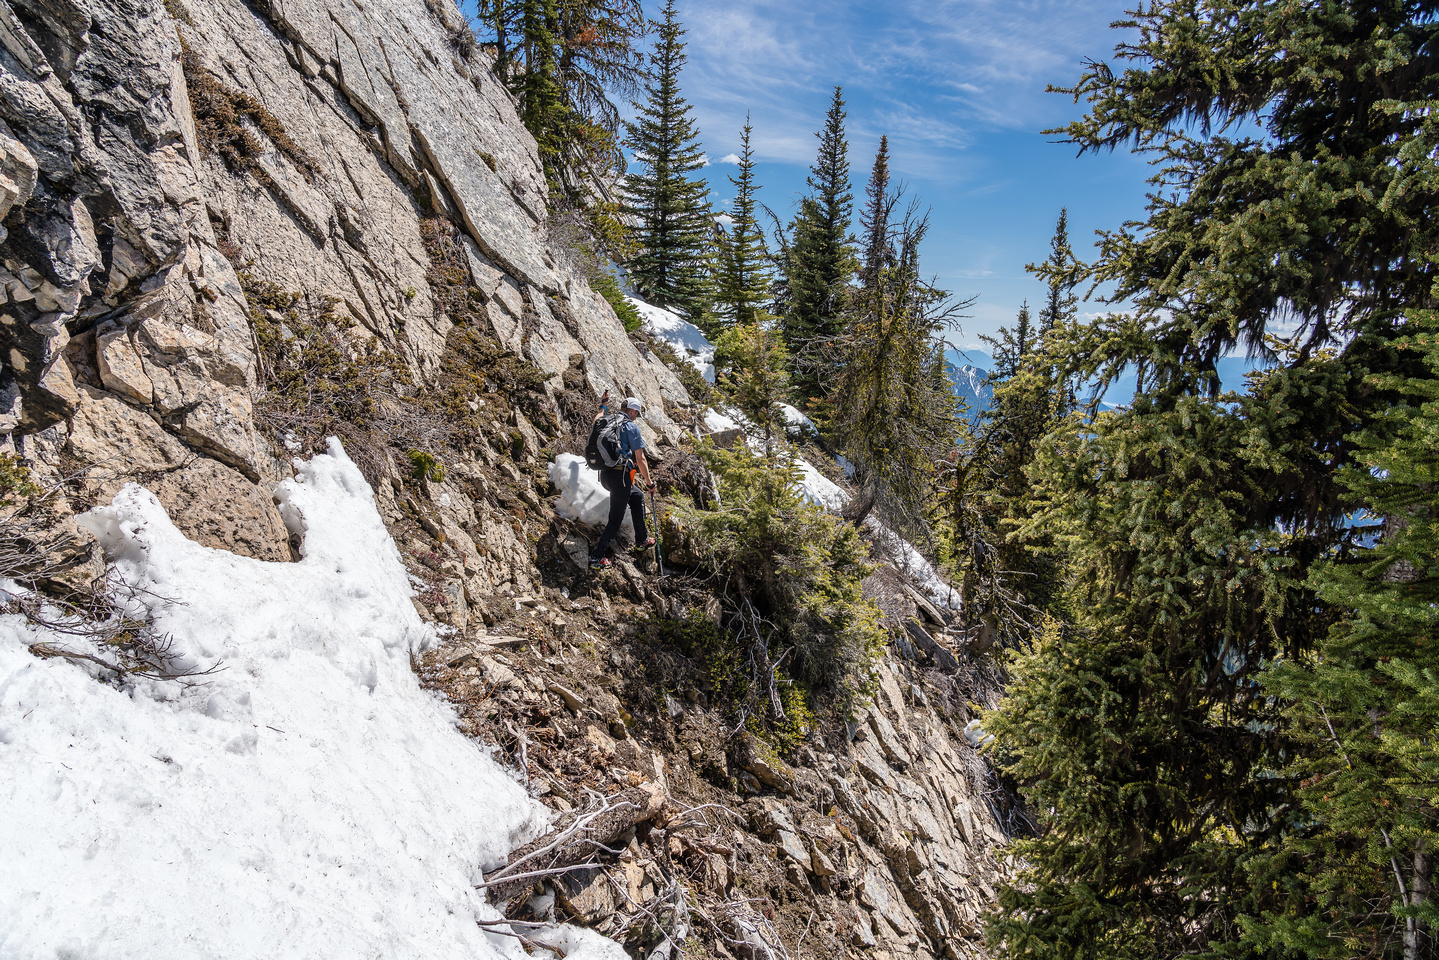 Traversing on the west side of the ridge.